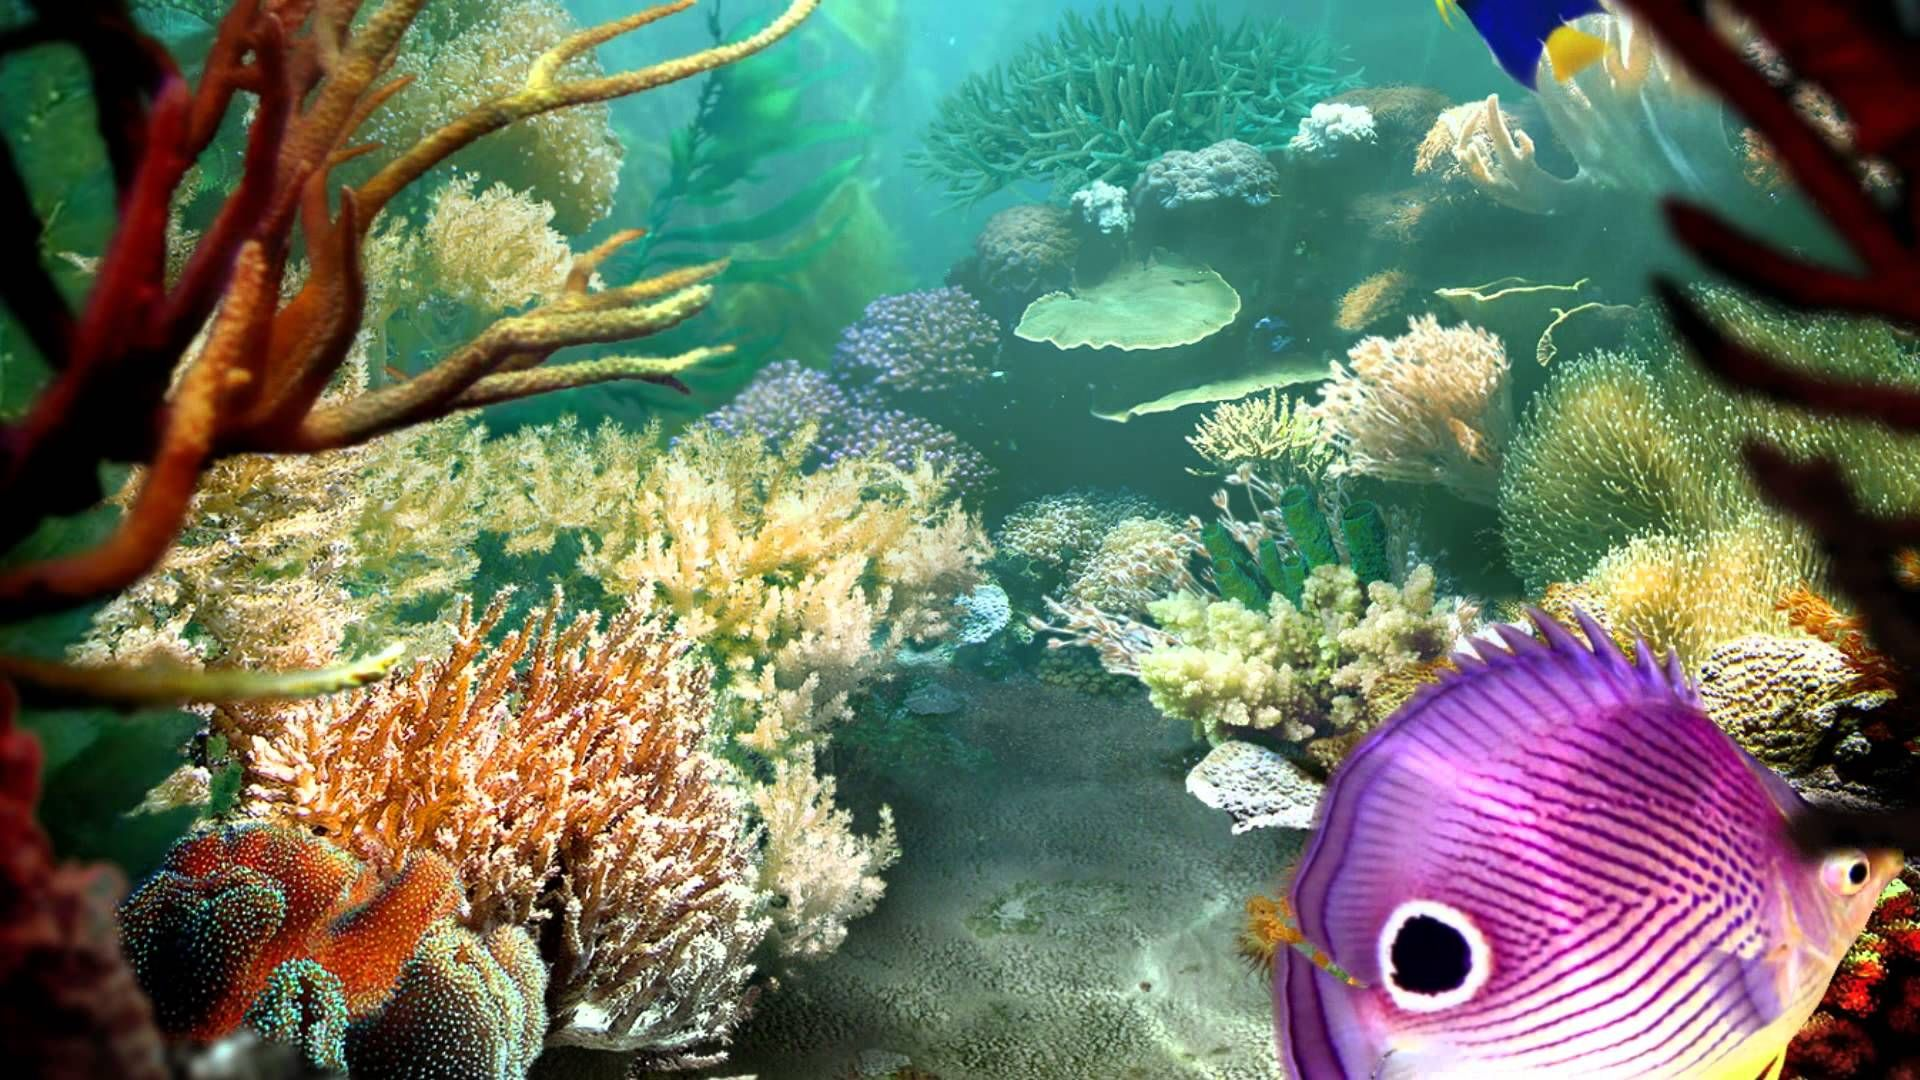 forever seeking - aquarium - 3d screensaver - piano hd 1080p | new